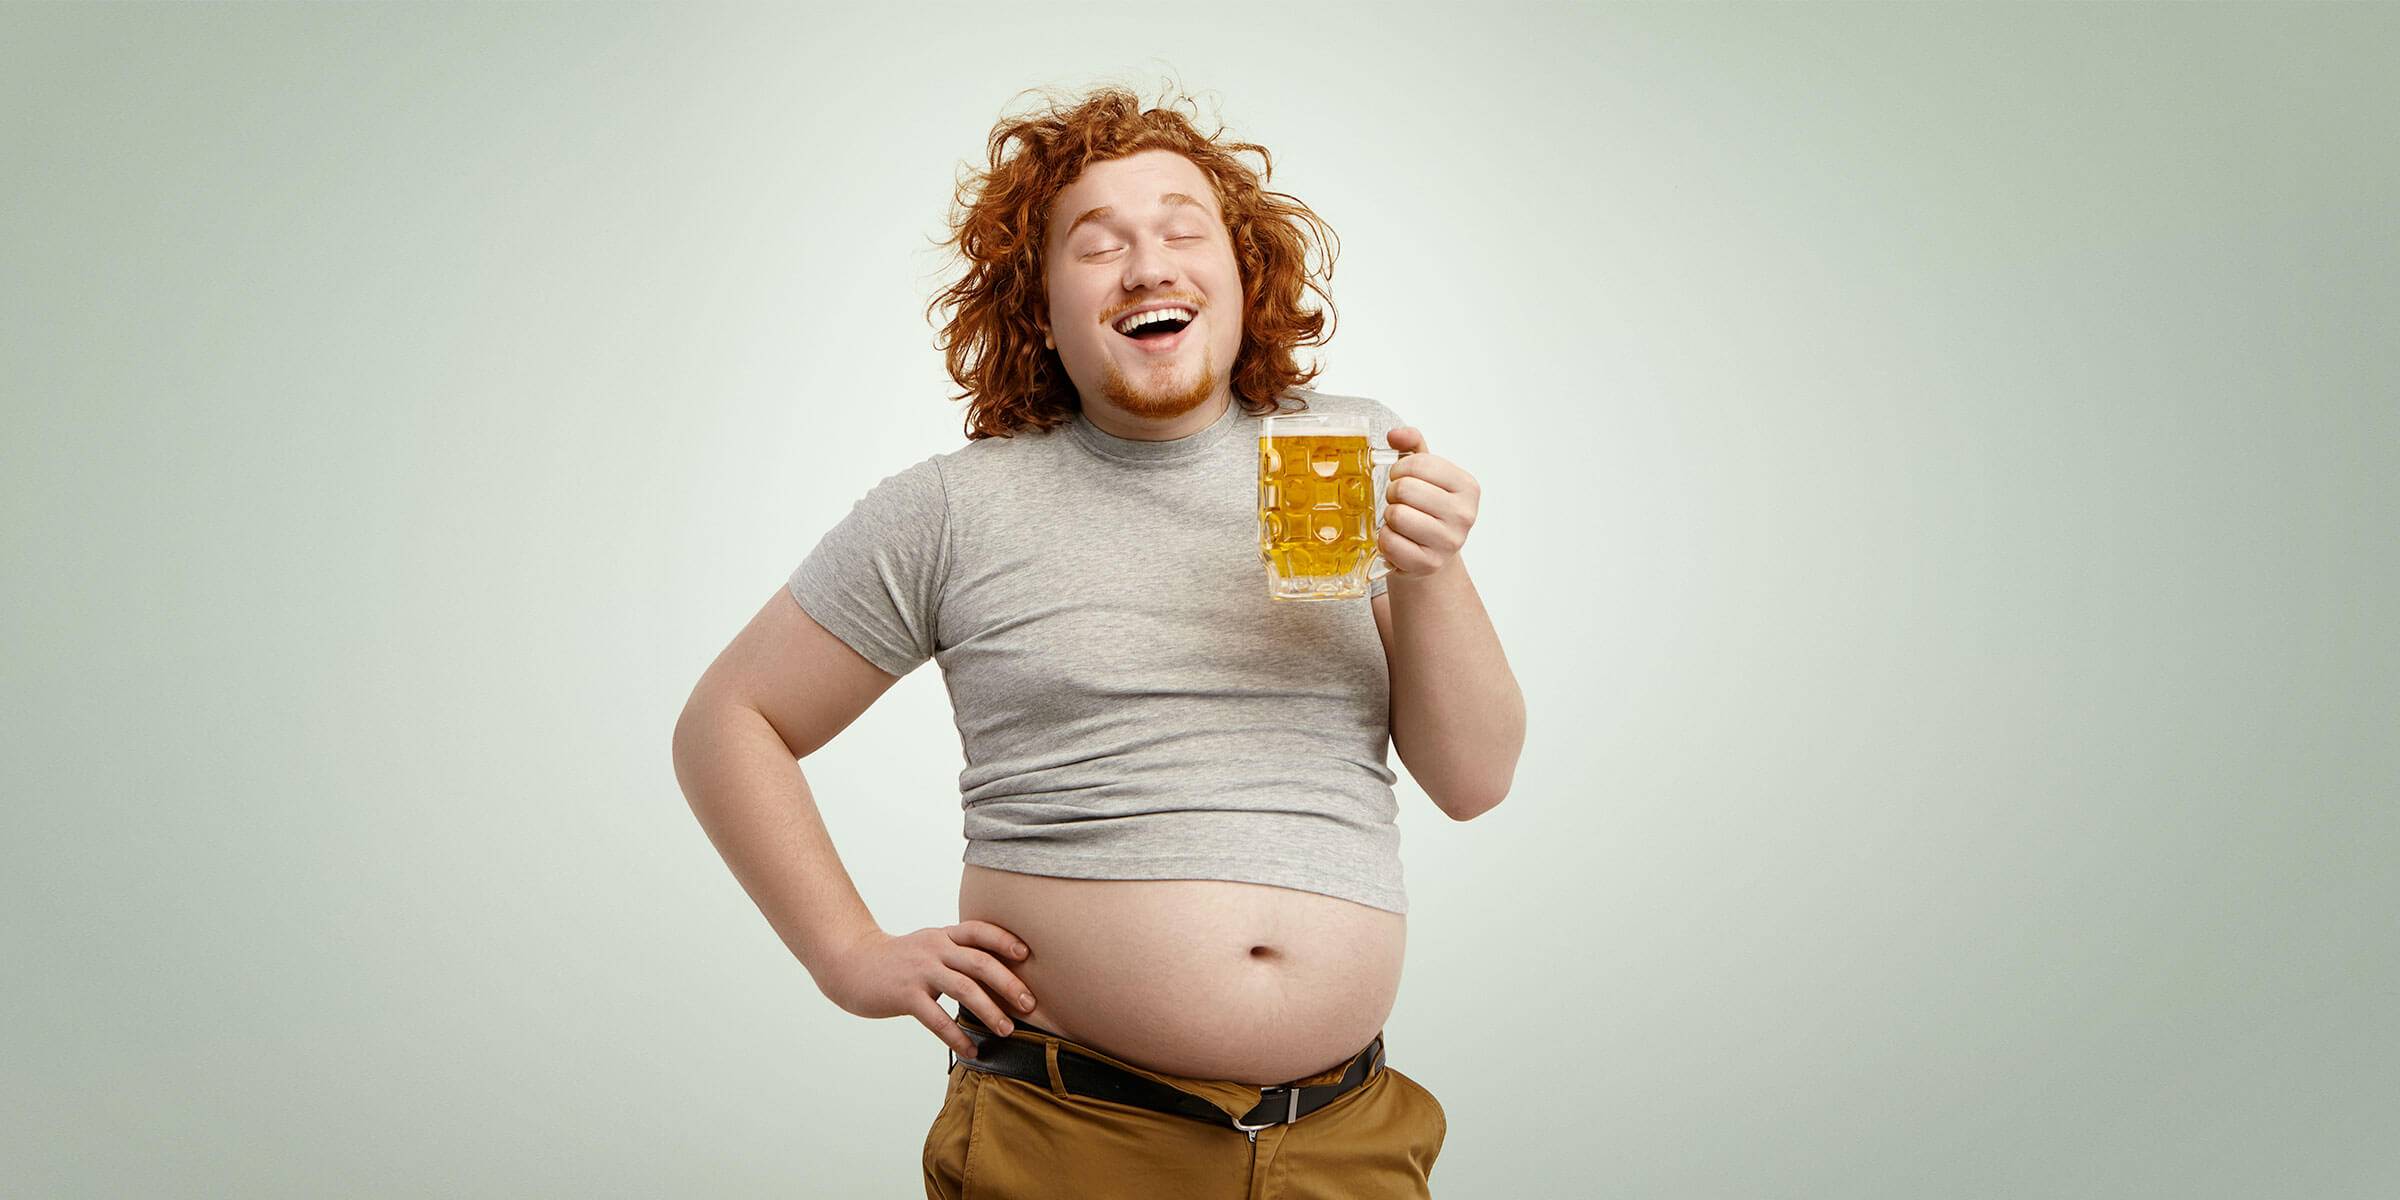 A fat red-haired man with an exposed beer belly is smiling while holding a mug of beer.